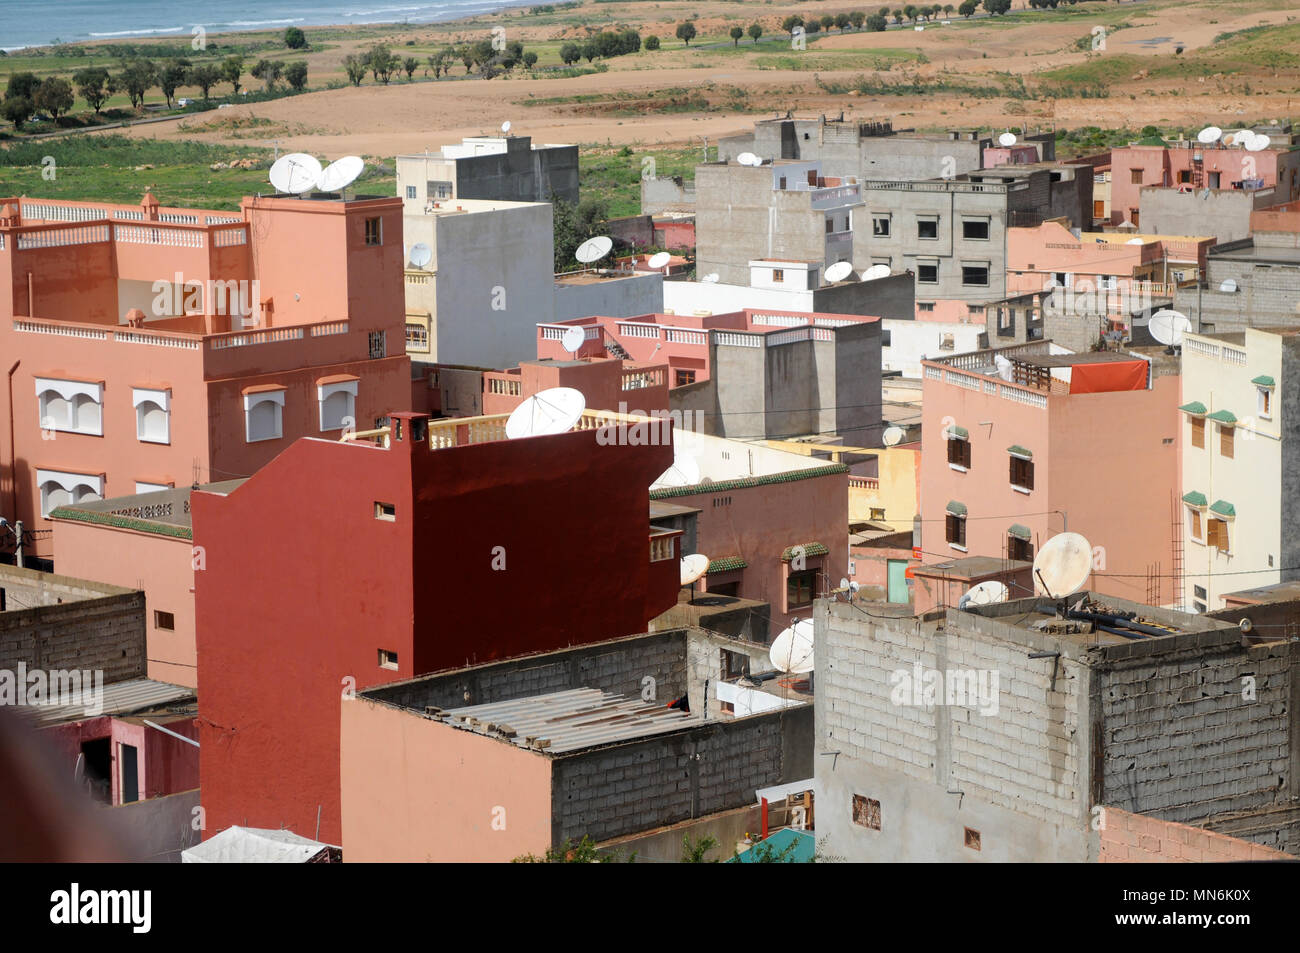 Outstanding Moroccan Homes Houses In Tagazout Morocco Stock Photo Interior Design Ideas Gentotryabchikinfo